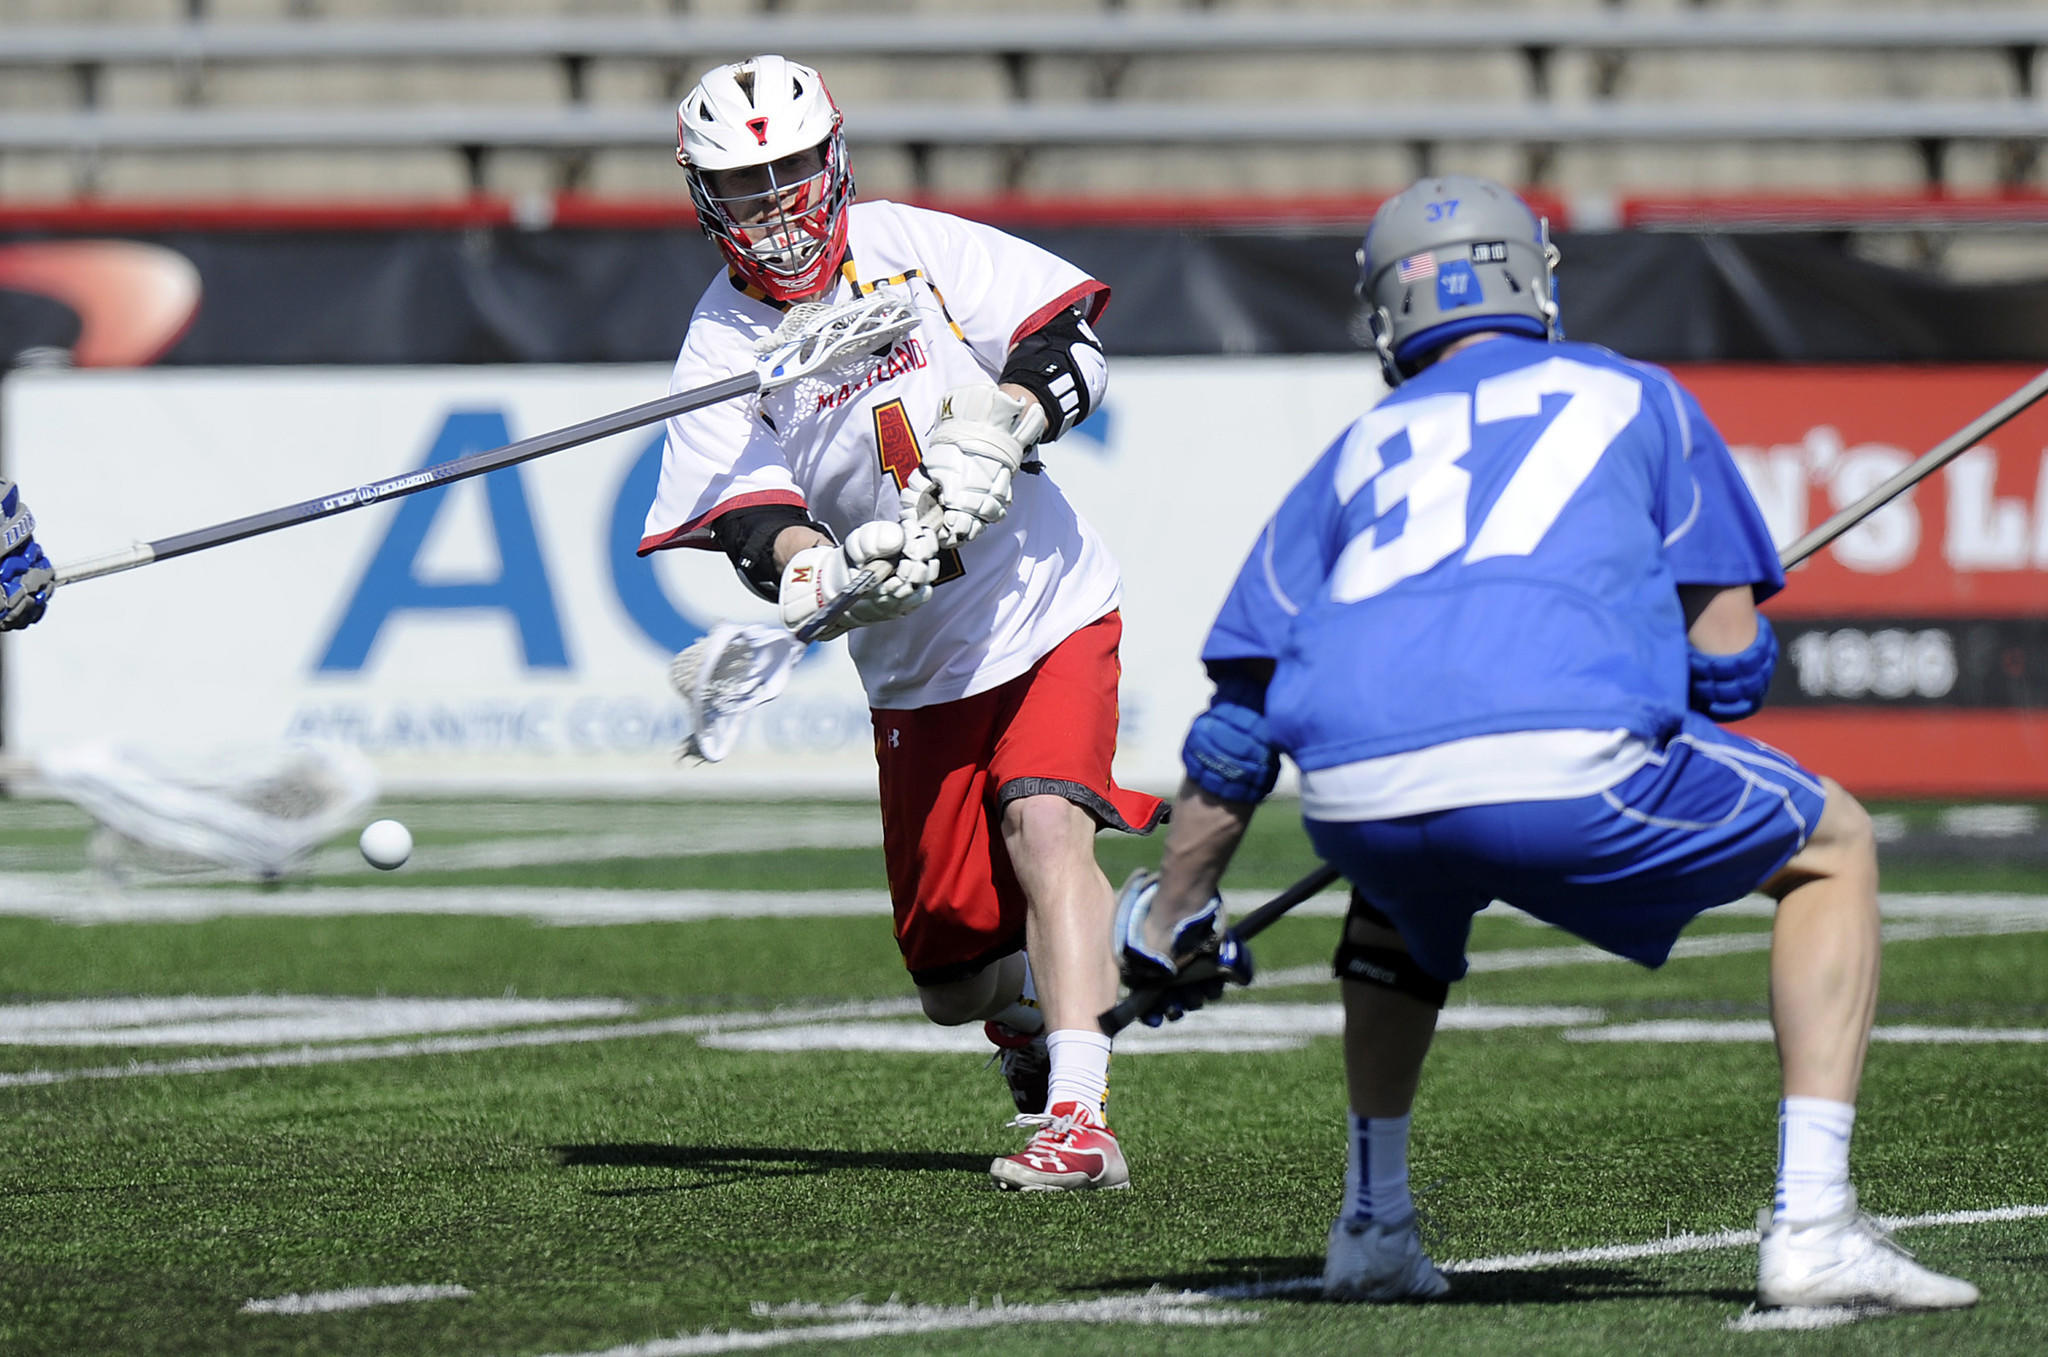 Maryland midfielder Mike Chanenchuk fires a low shot in front of defenseman Casey Carroll in a 10-6 Terps win on March 1 in College Park.